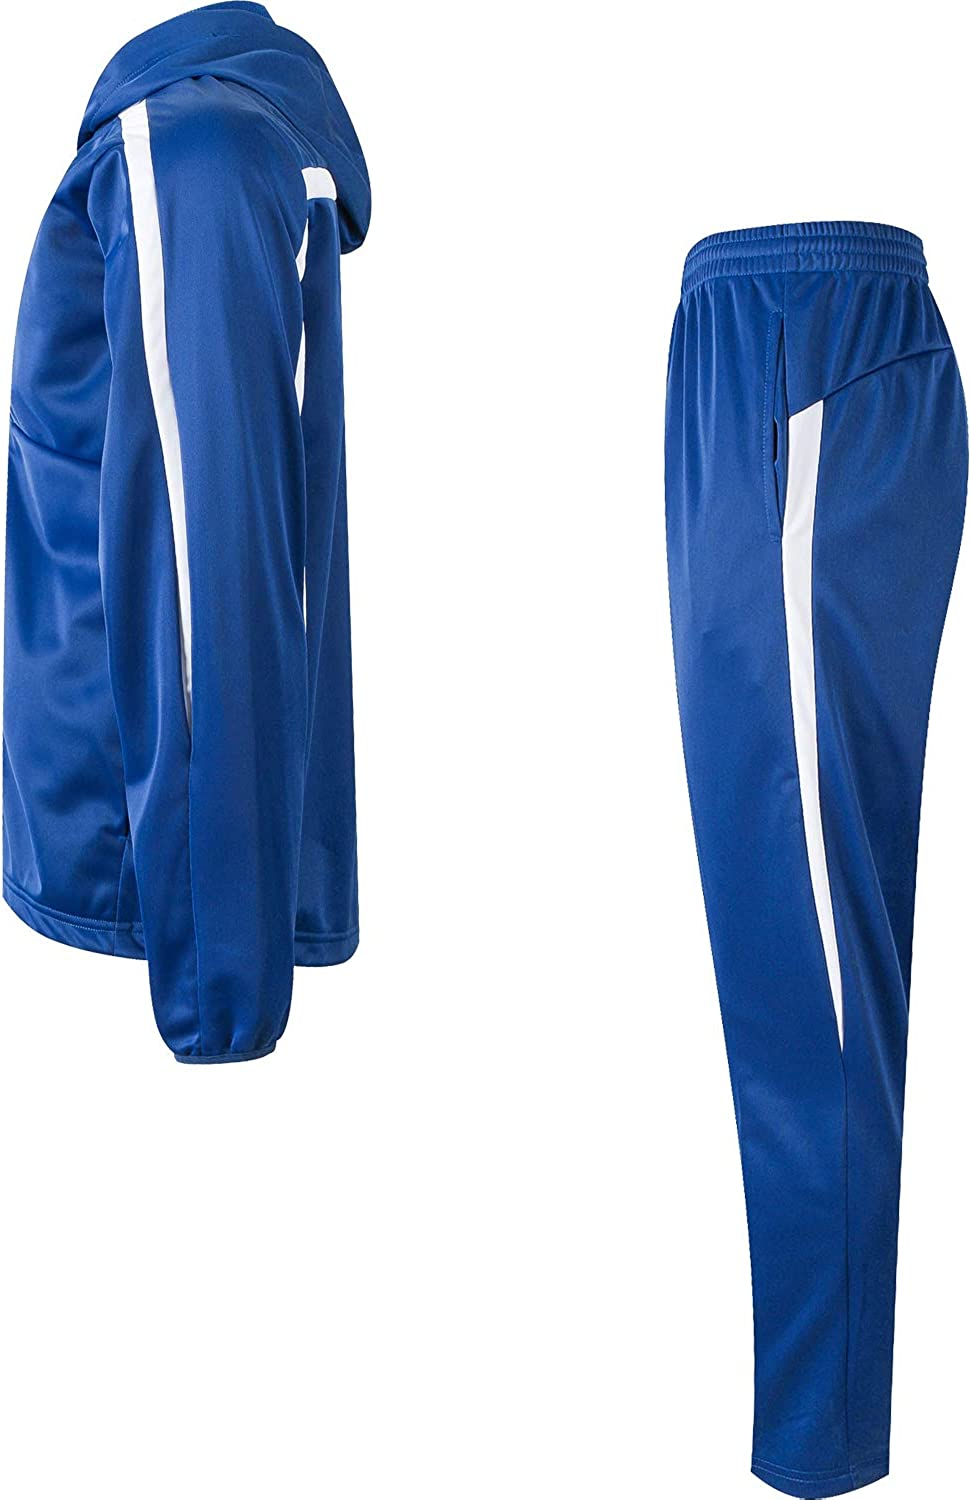 Active Tracksuits Mens Athletic Casual Pant and Hooded Jacket Sweatsuit Set  Clothing, Shoes & Jewelry samel.com.br